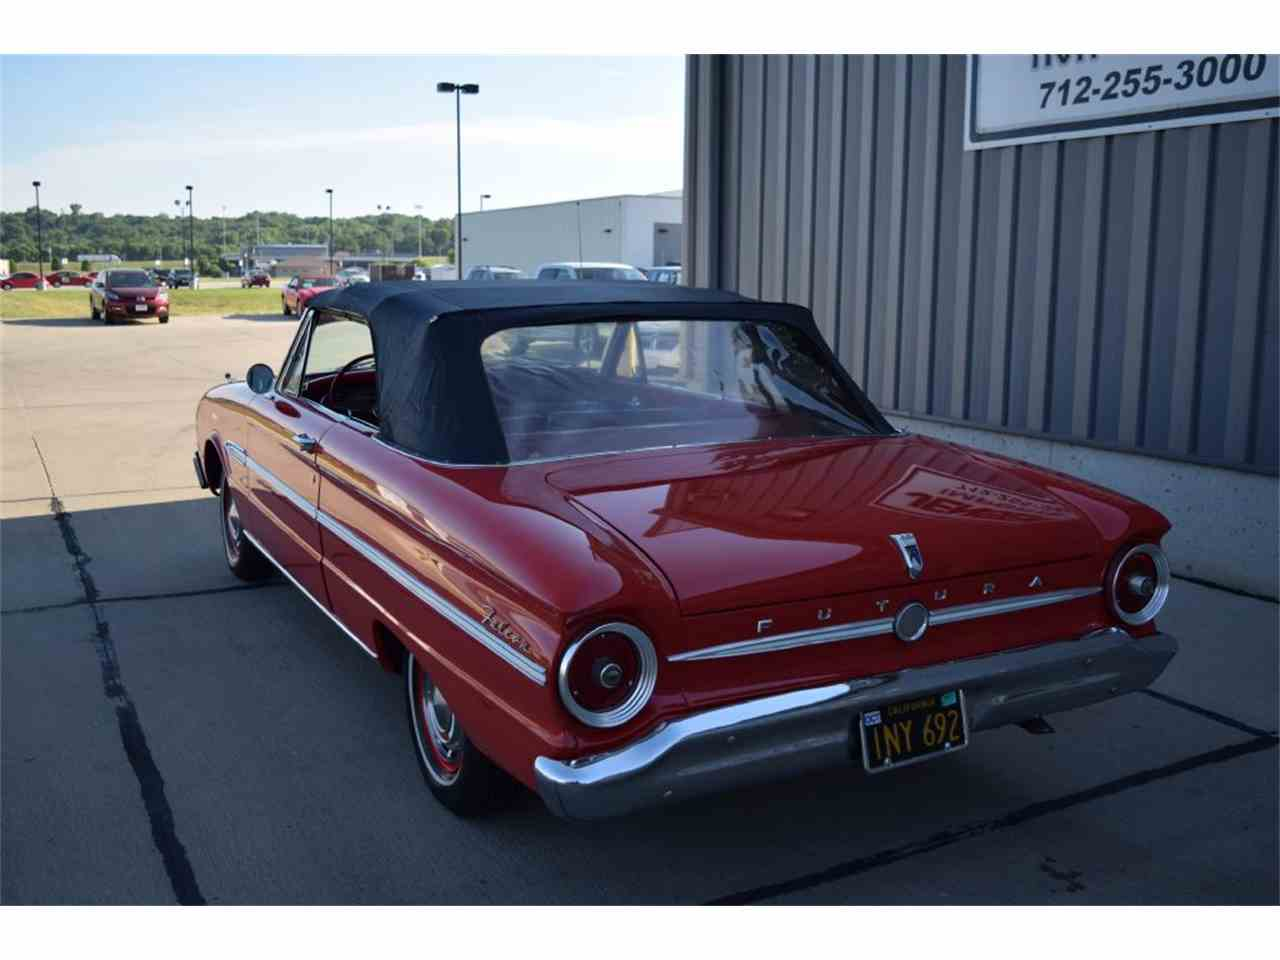 Large Picture of Classic '63 Ford Falcon Futura - $24,900.00 Offered by Jensen Dealerships - LUN9